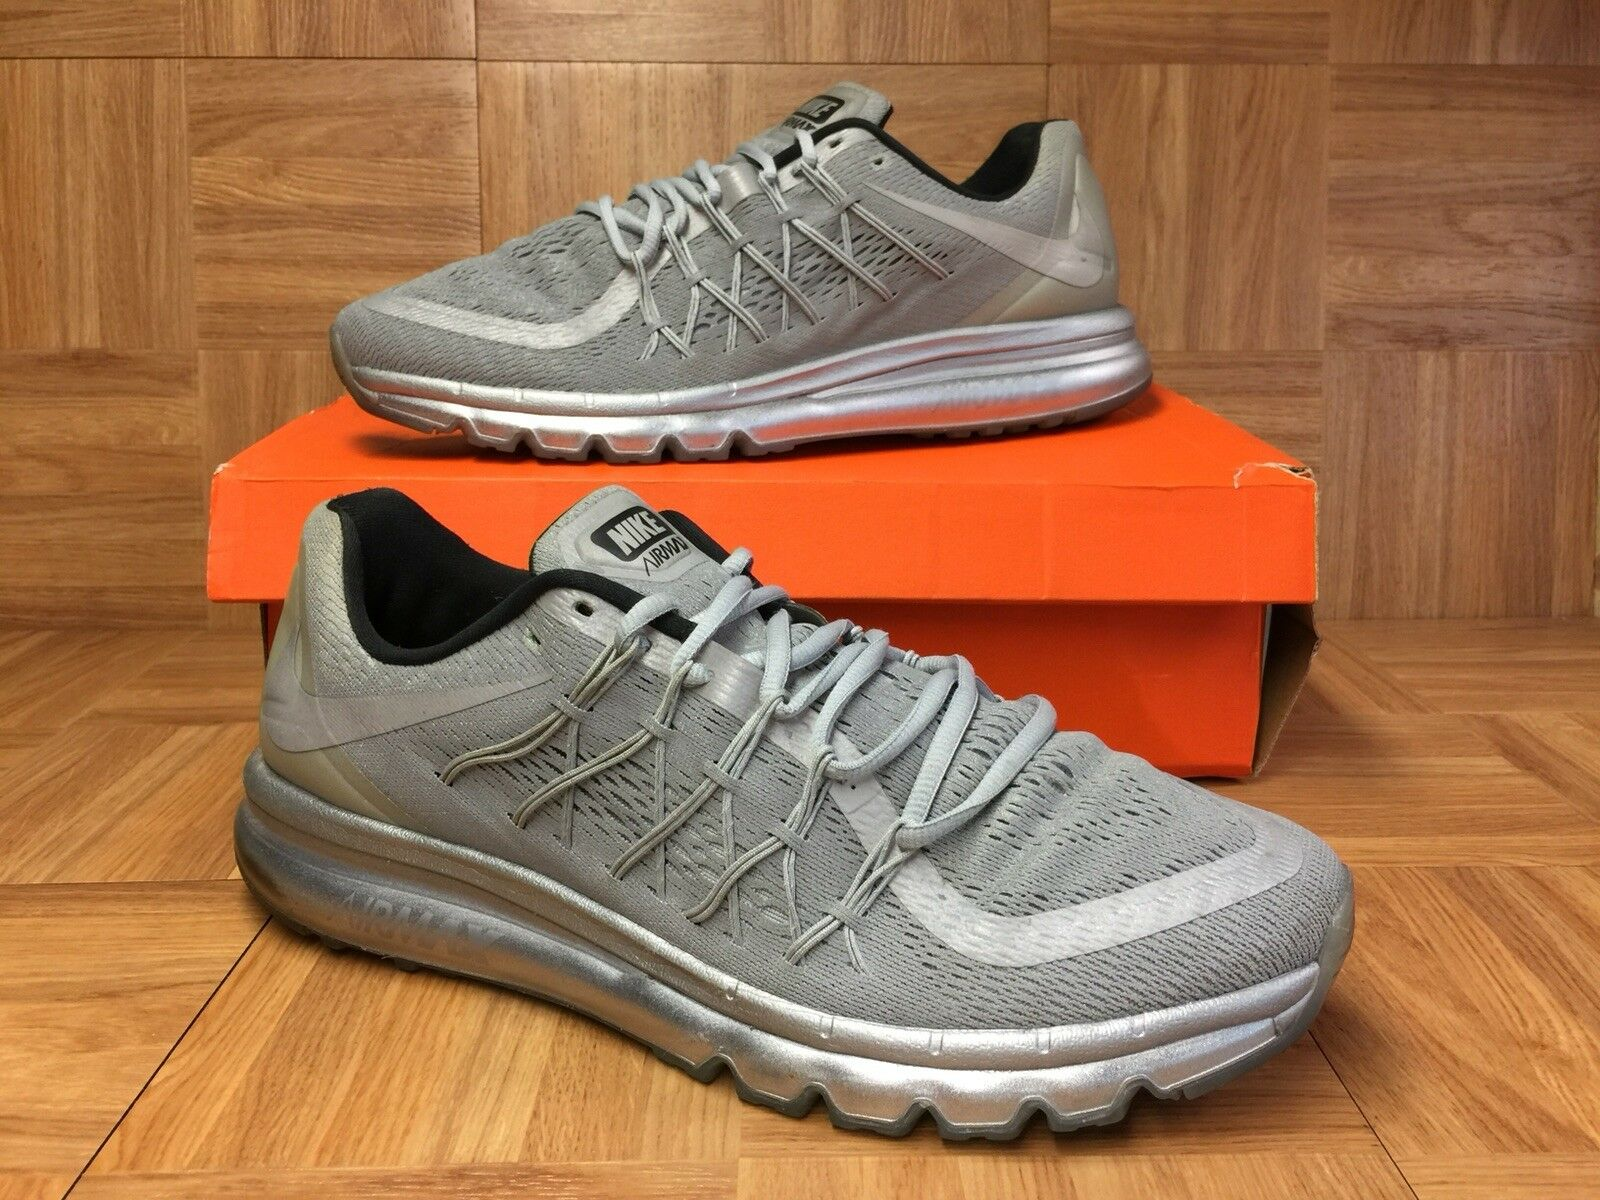 RARE Nike Air Max 2015 Reflective Silver Reflect Moon Suit Sz 14 709013-001